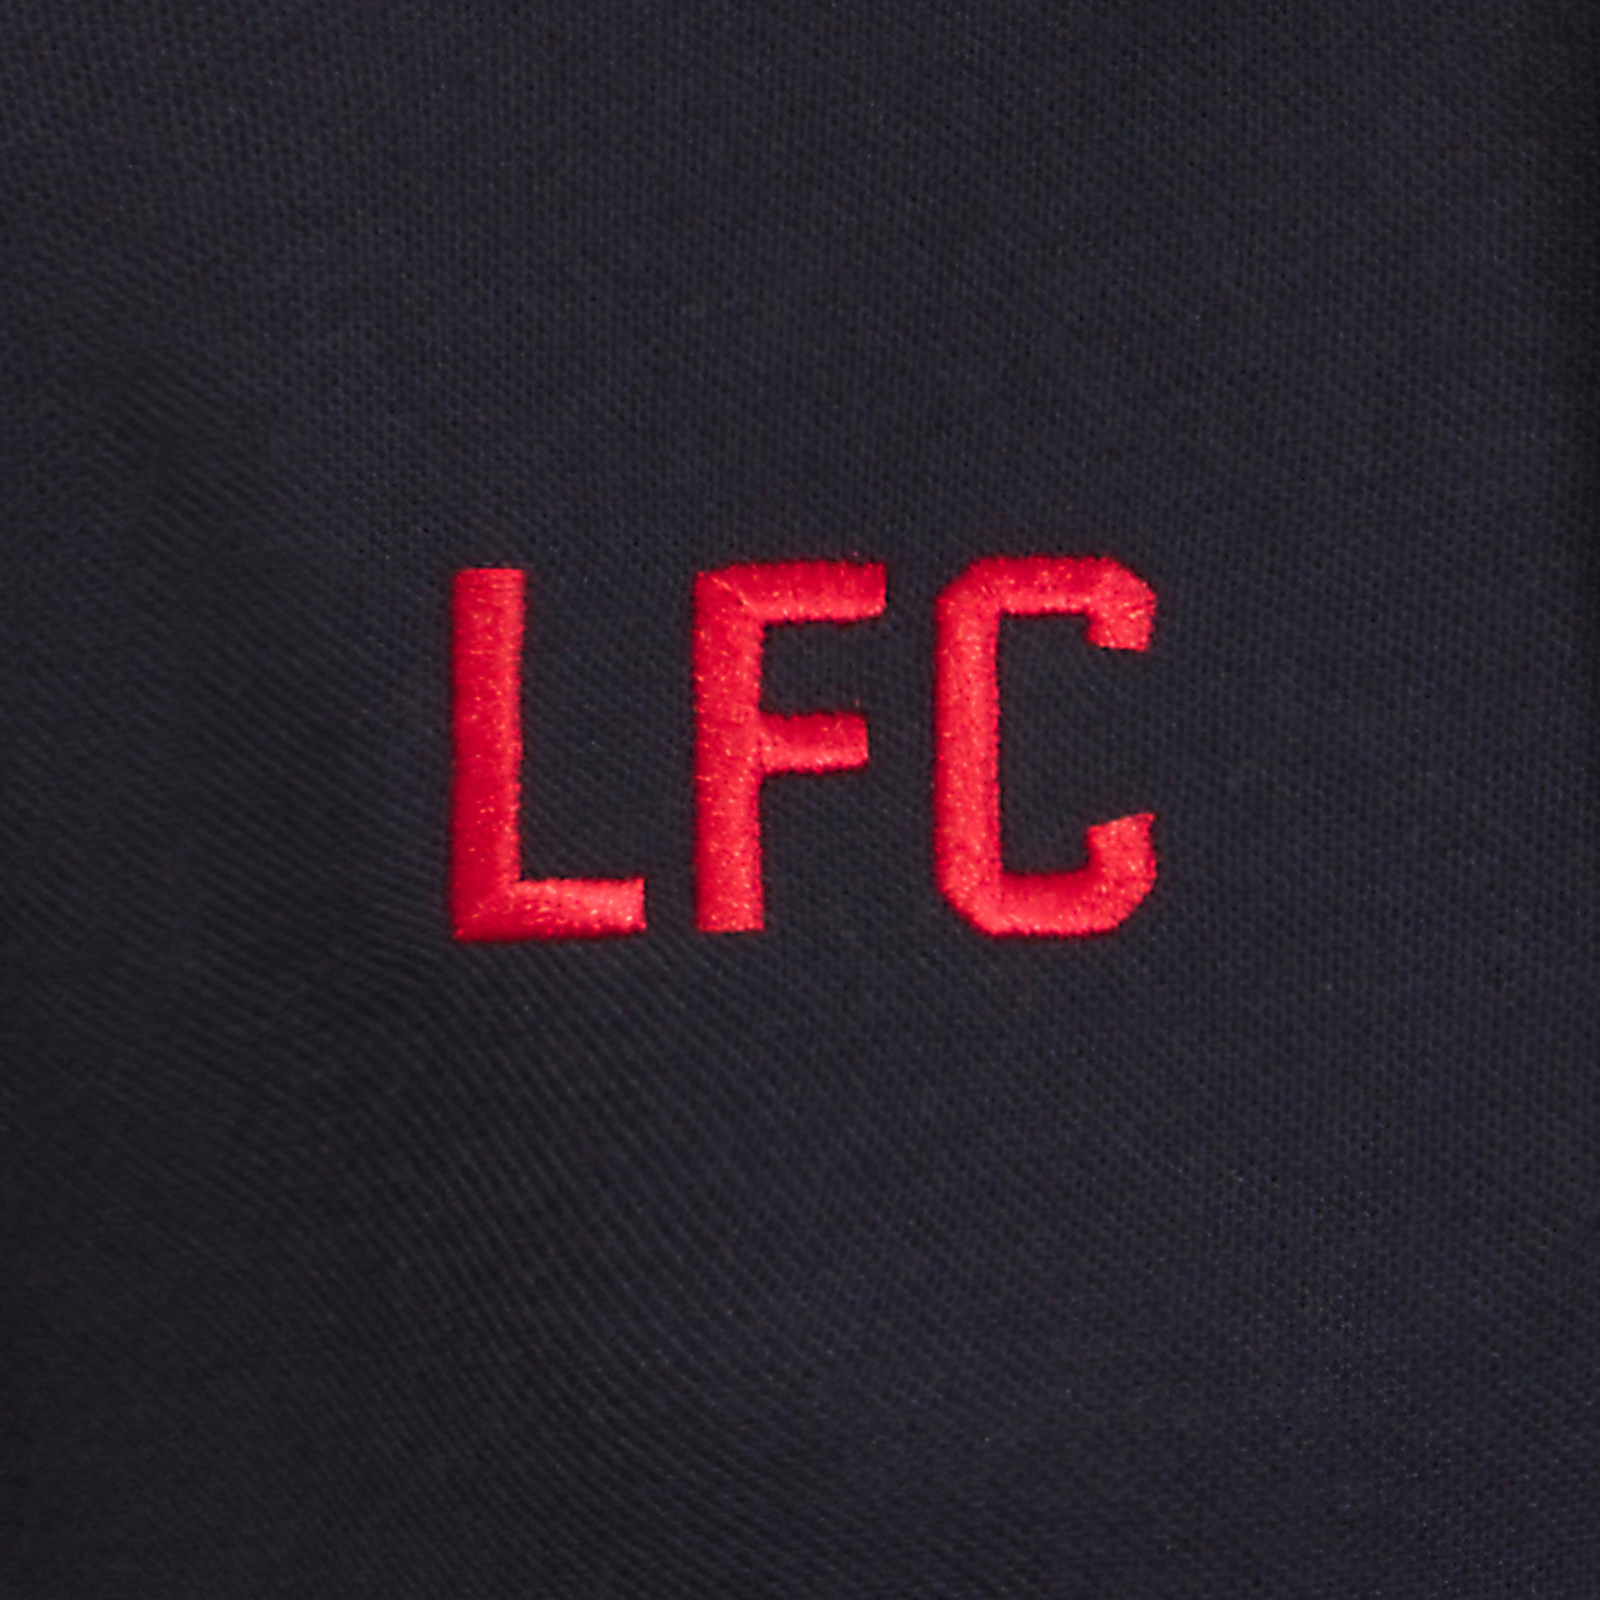 Liverpool-FC-Official-Football-Gift-Mens-Crest-Polo-Shirt thumbnail 4